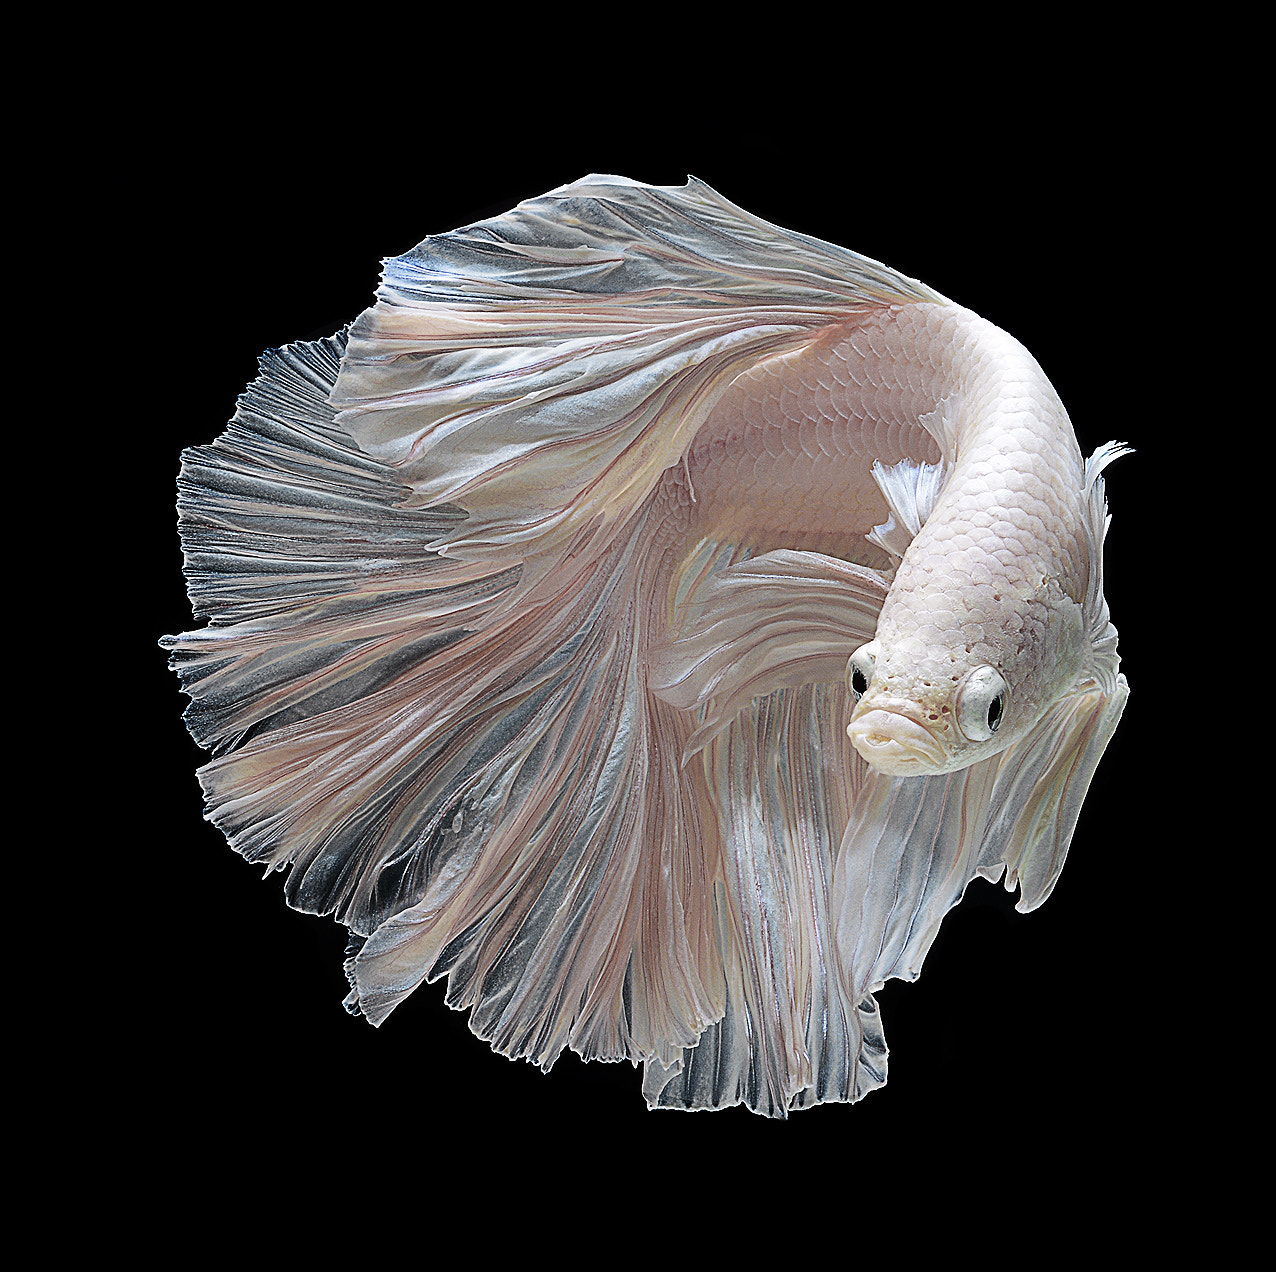 Photograph white betta fish by visarute angkatavanich on 500px